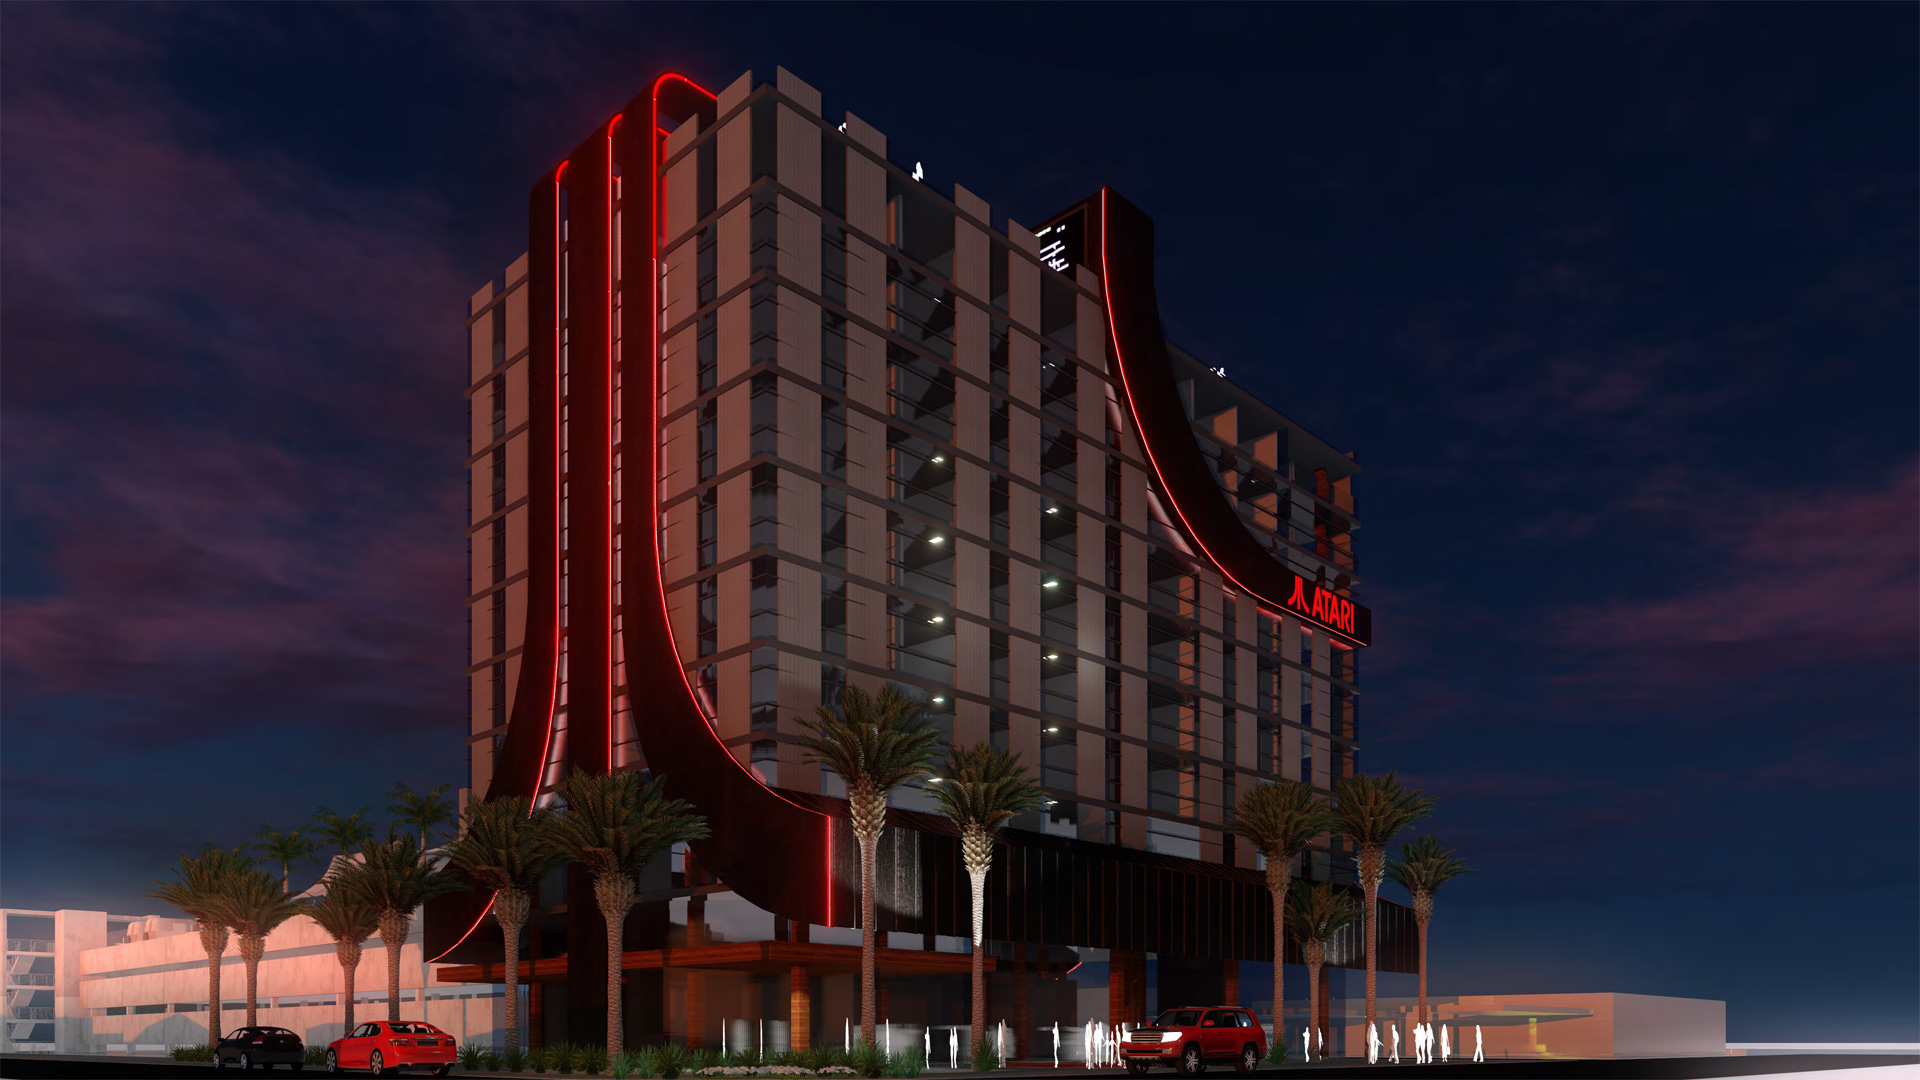 Atari wants to open gaming hotels in at least eight US cities